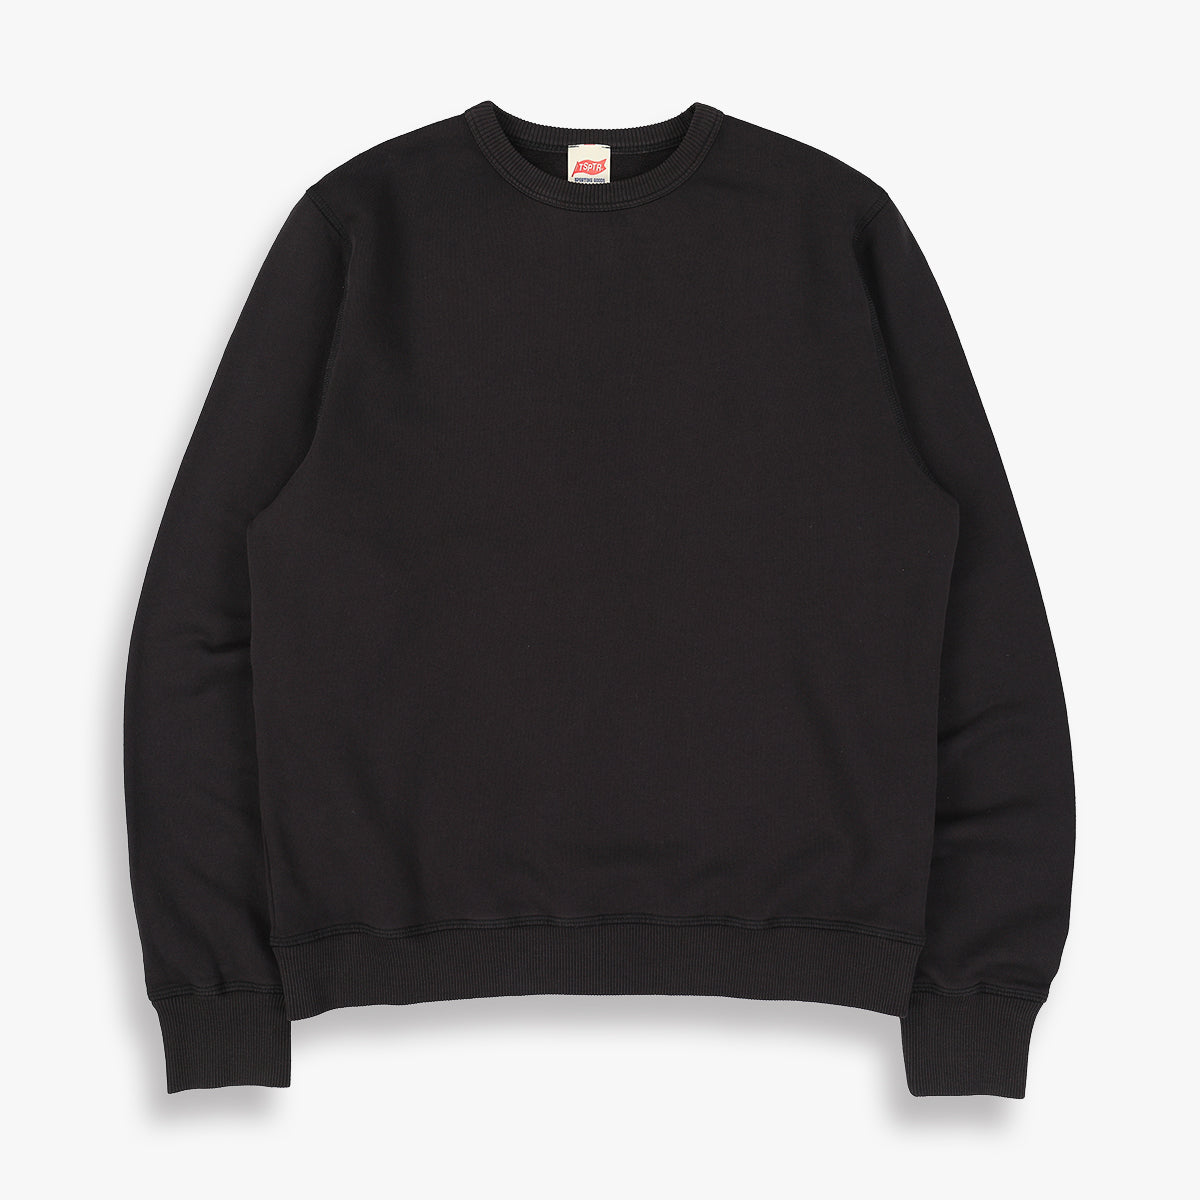 TSPTR Base Range Sweatshirt